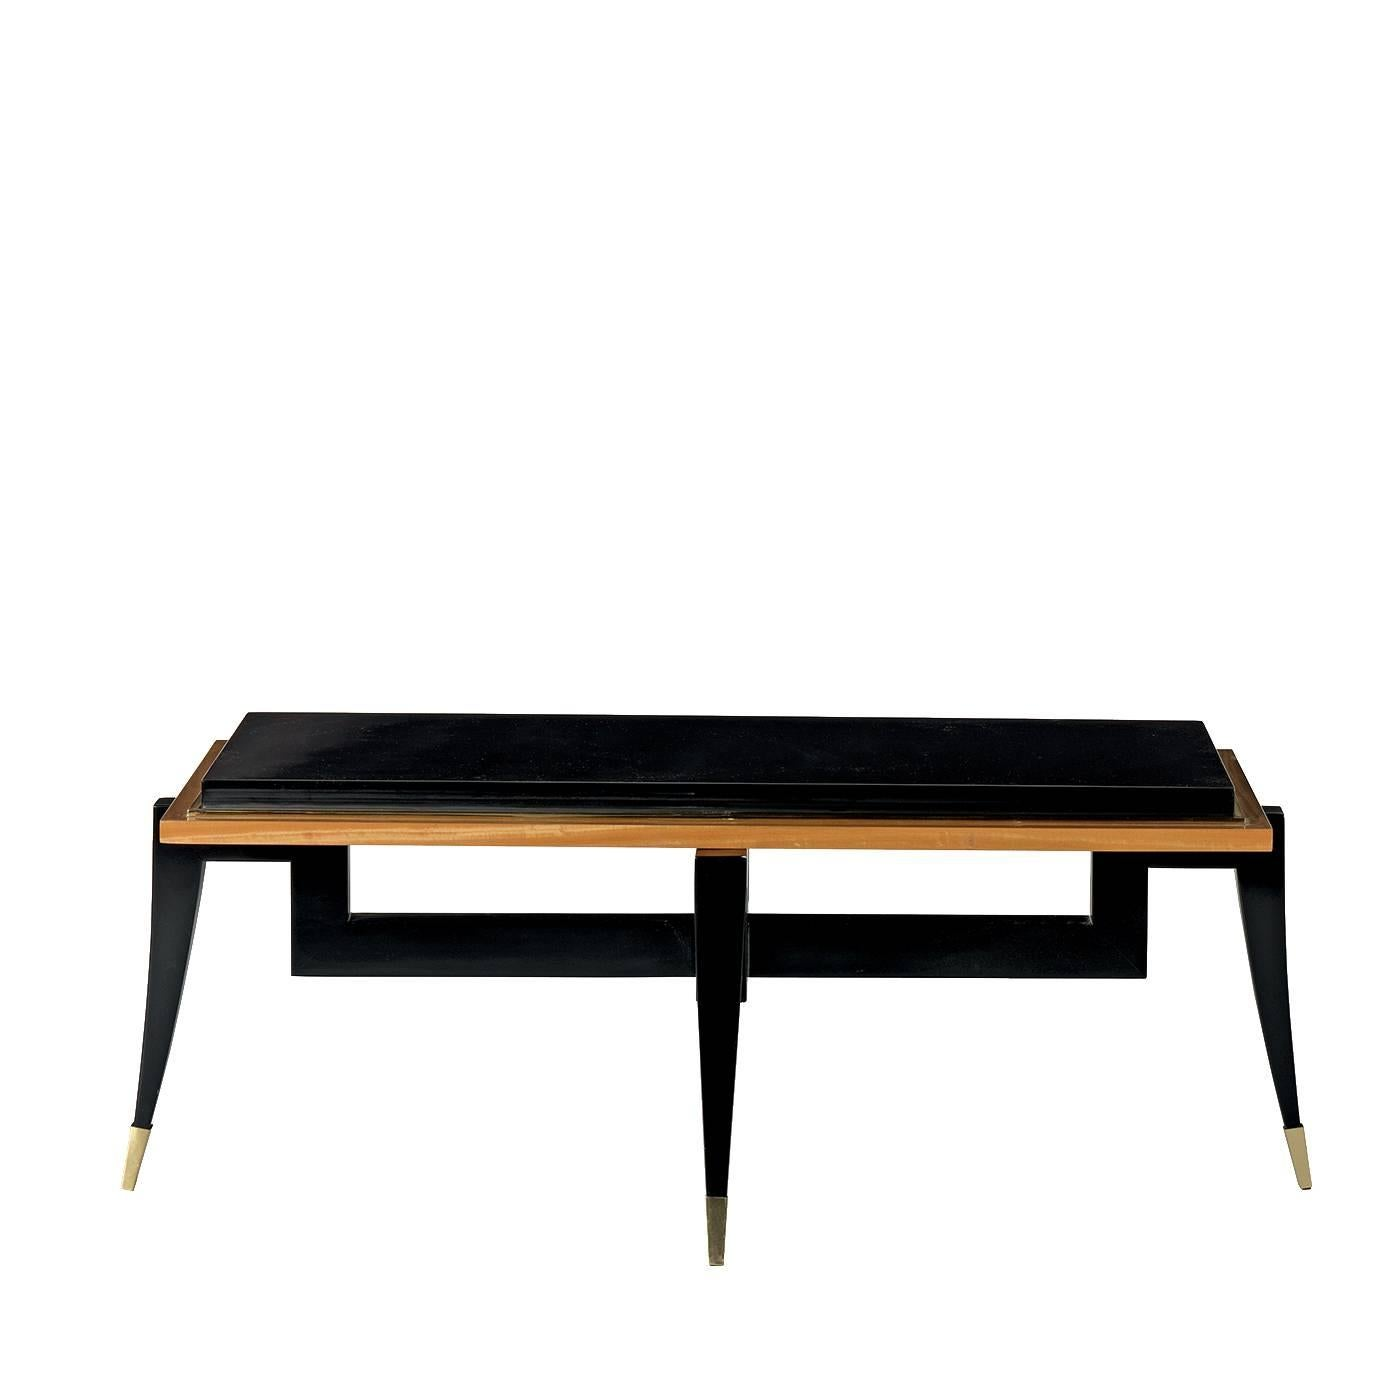 Citronnier wood coffee table with black finish for sale at 1stdibs